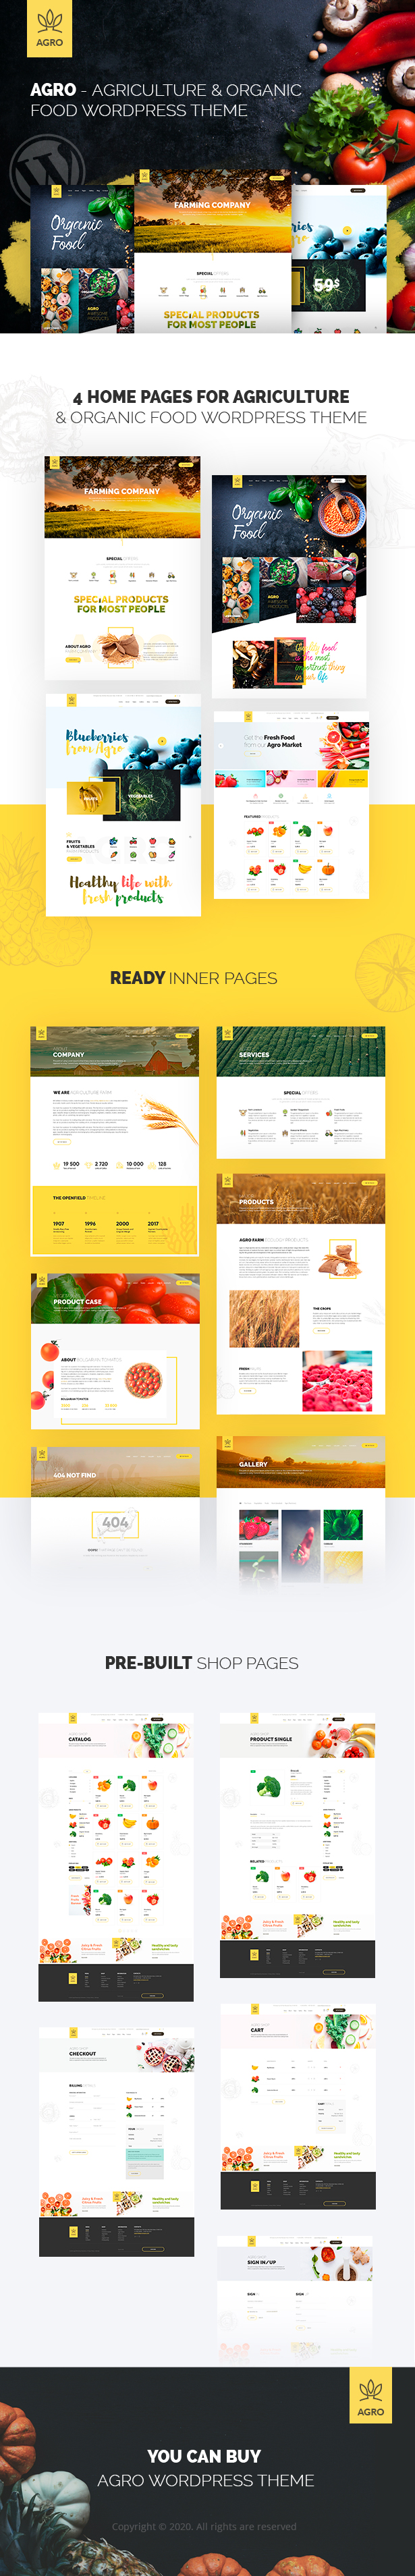 Agro - Organic Food  & Agriculture WordPress Theme - 2